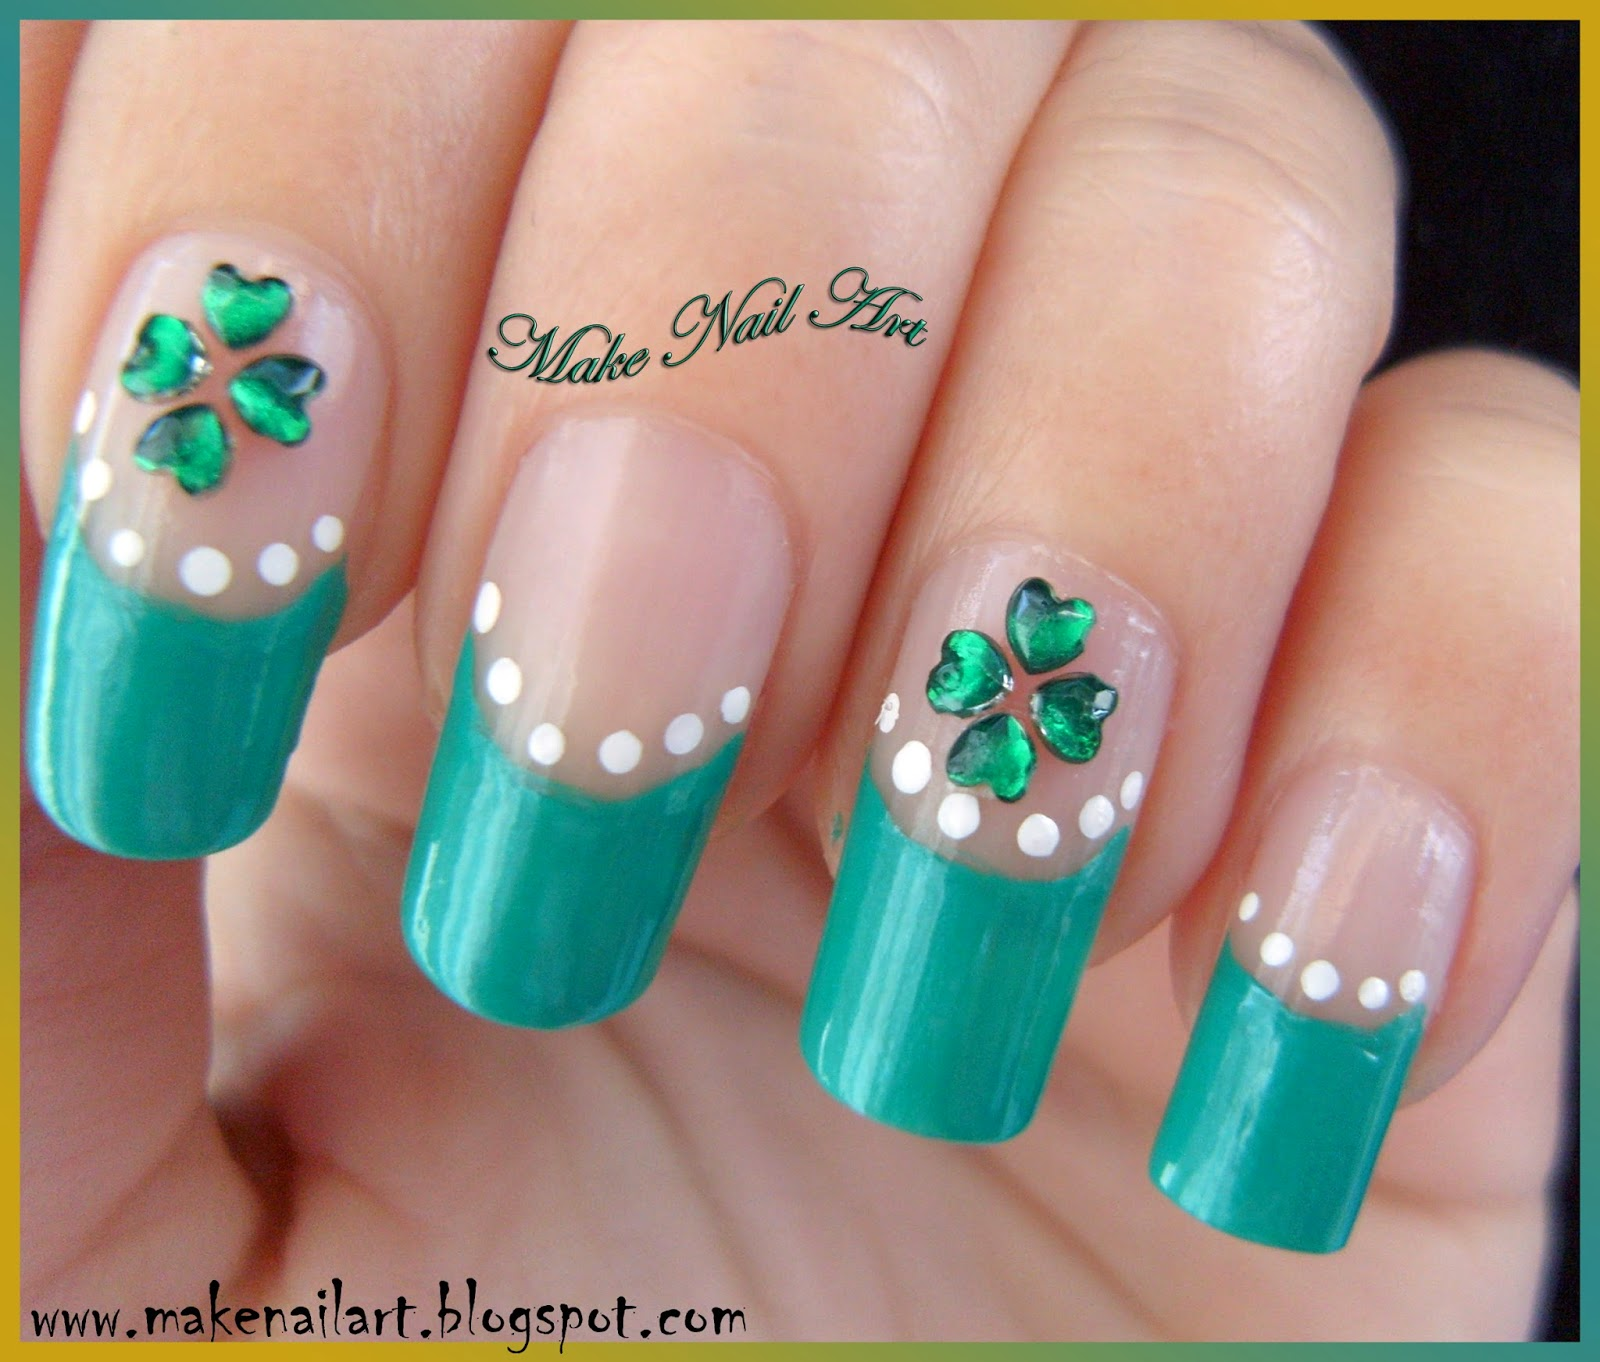 Make nail art st patricks day four leaf clover nail art tutorial st patricks day four leaf clover nail art tutorial prinsesfo Gallery